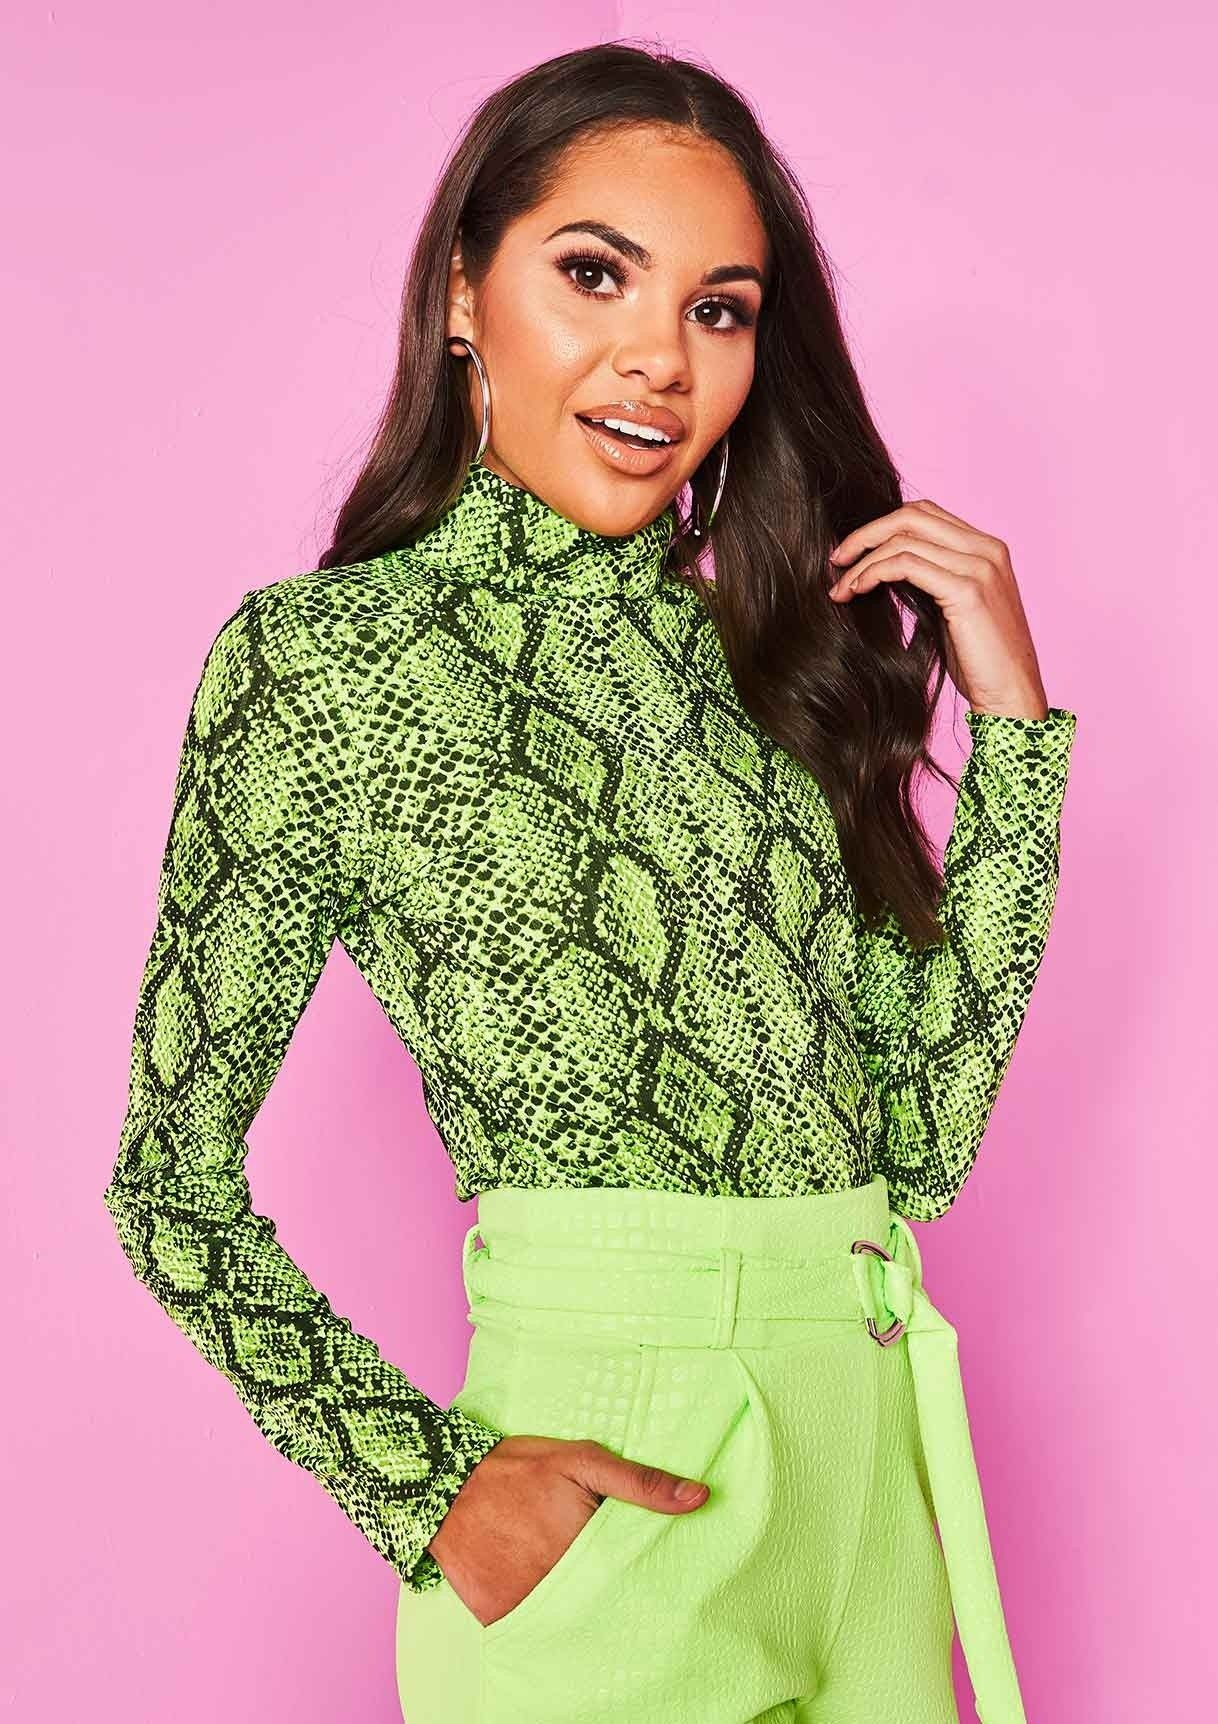 931ef2b822e8b Yula Neon Green Snake Print High Neck Top in 2019 | ⚡ comin' in ...